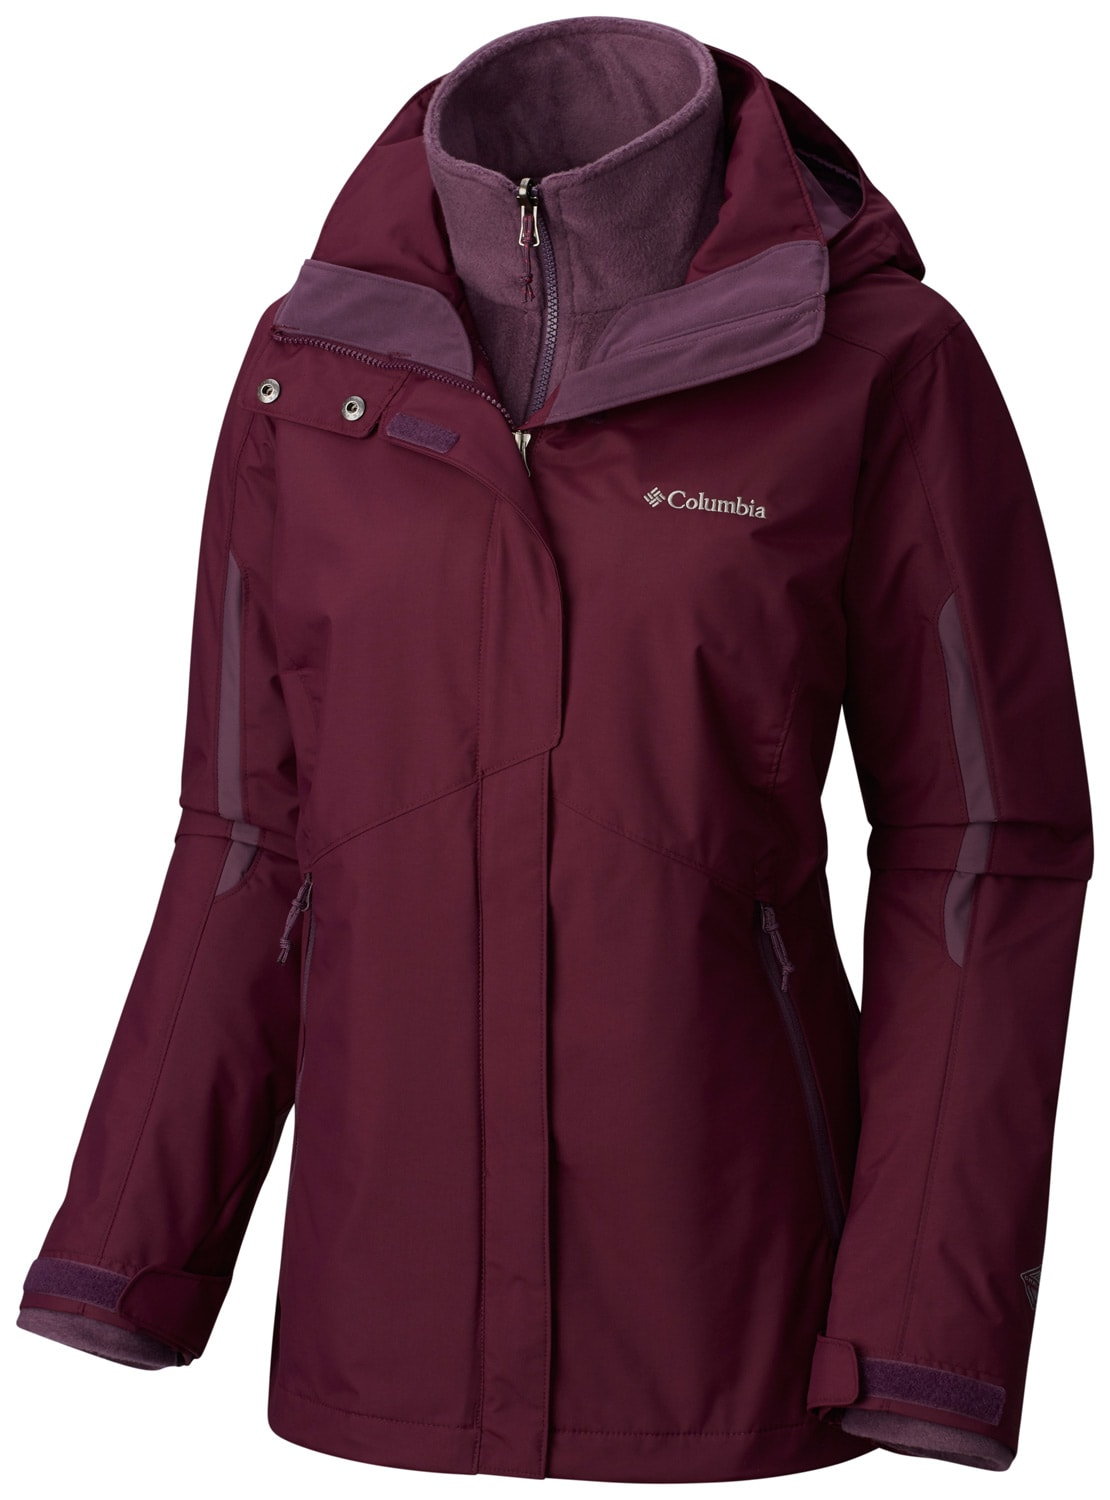 On Sale Columbia Bugaboo Interchange Ski Jacket - Womens